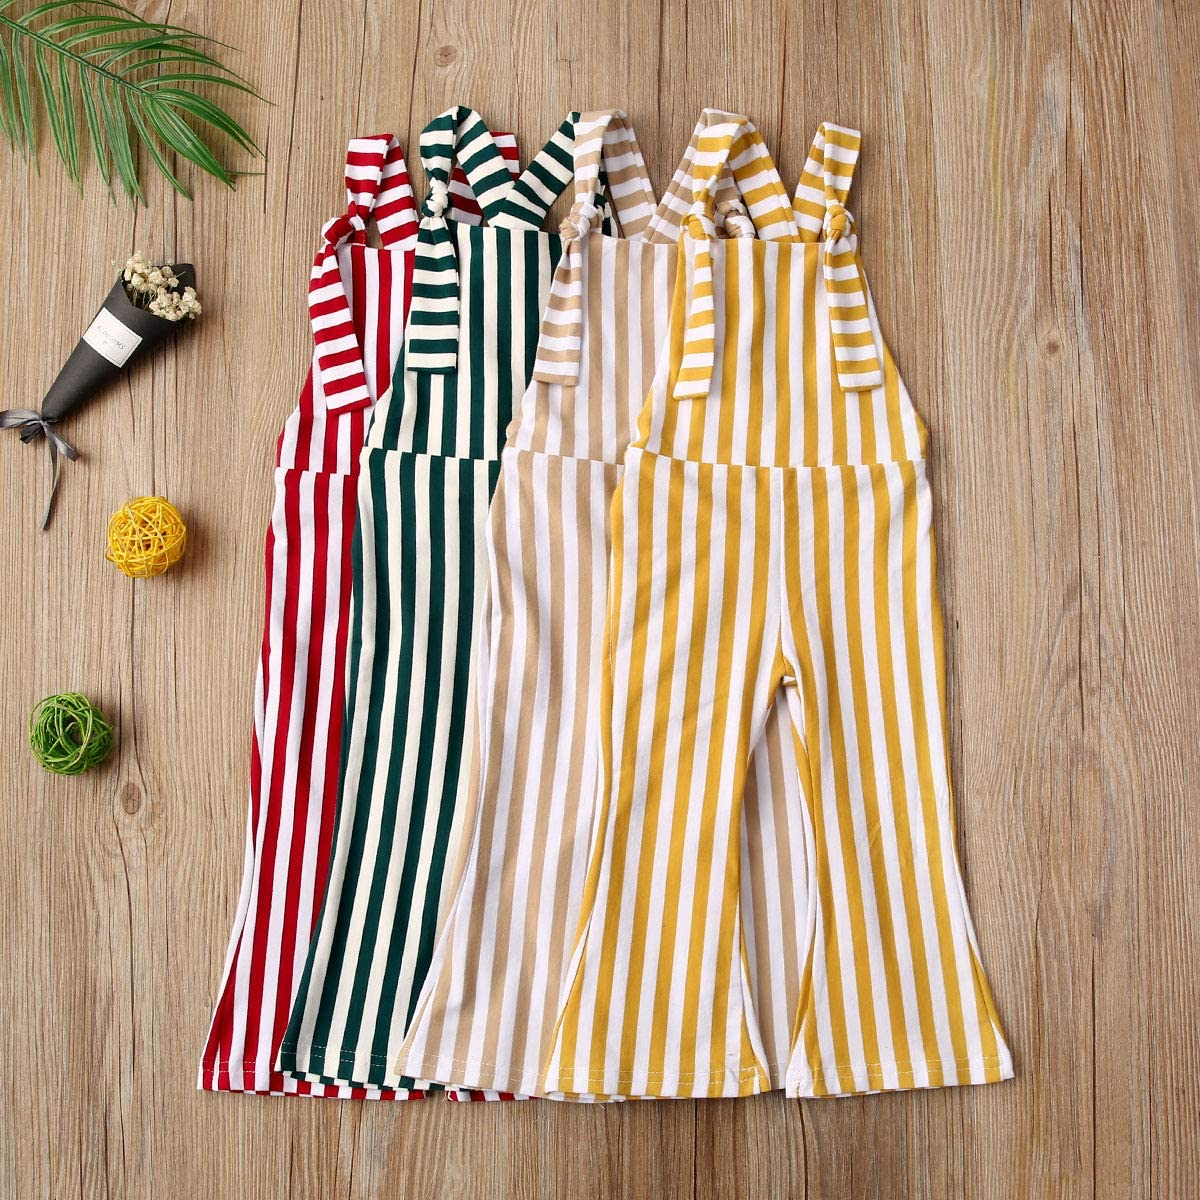 ZAXARRA Toddler Kids Baby Girl Stripes Bell-Bottom Jumpsuit Romper Overalls Pants Outfits